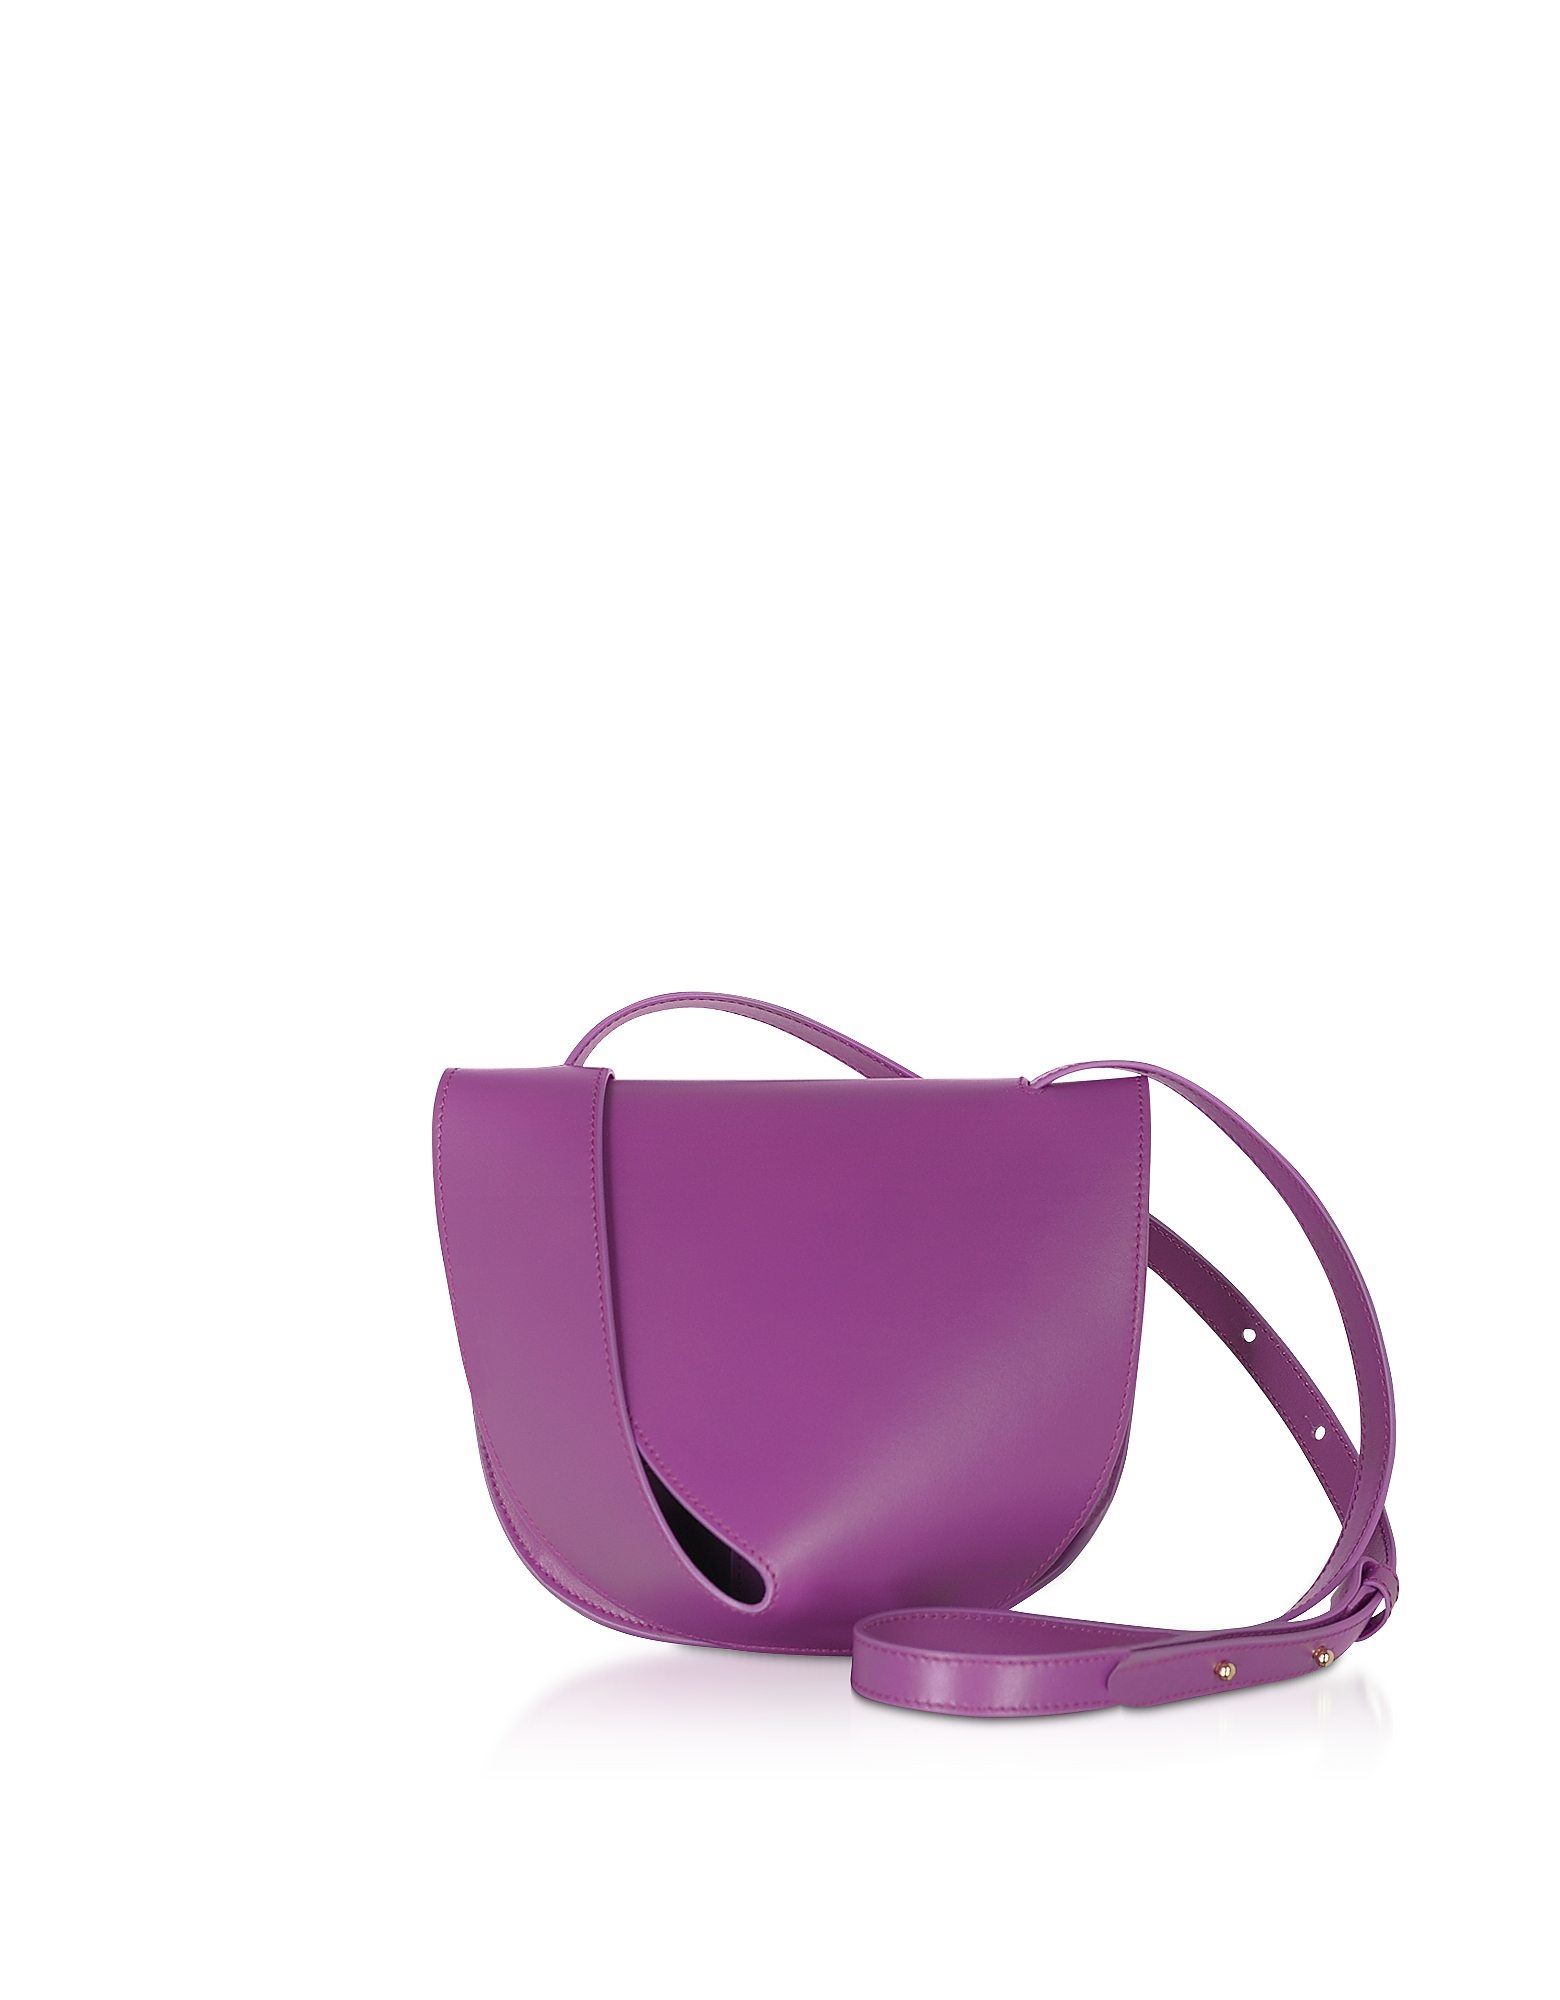 Giaquinto Designer Handbags, Candy Saddle Orchid-Egret Shoulder Bag